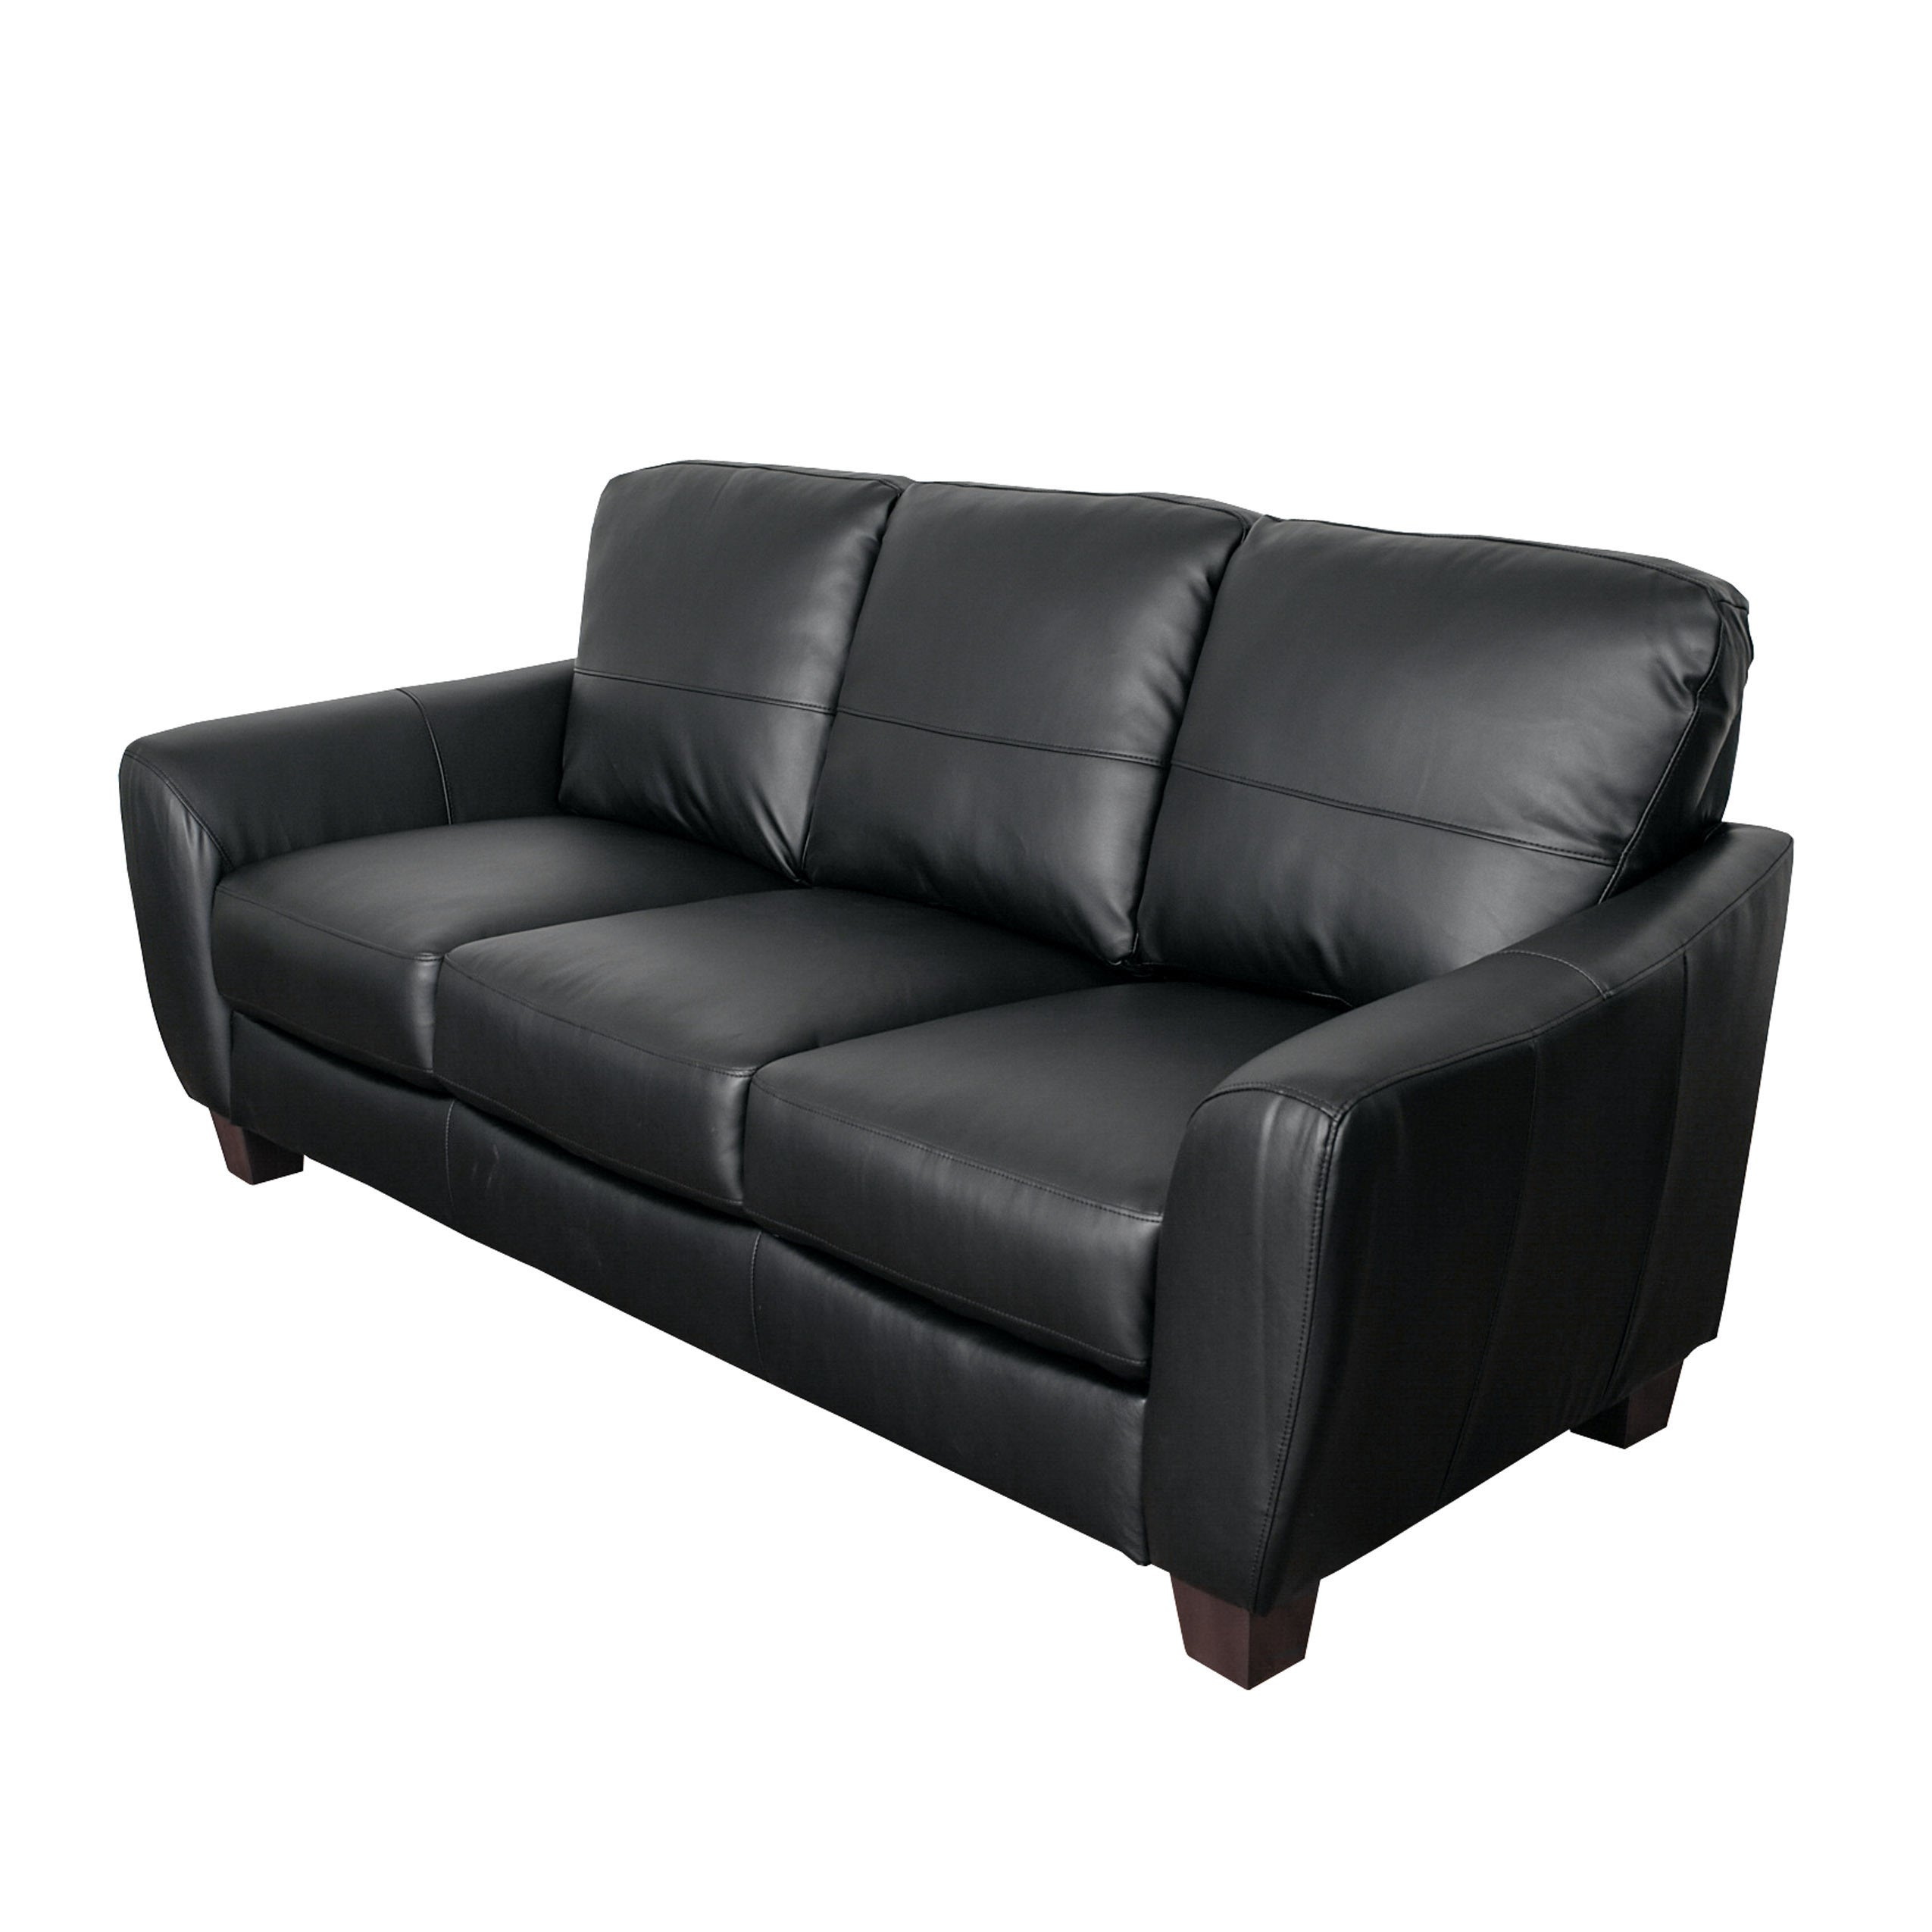 Shop CorLiving Jazz Bonded Leather Sofa   Free Shipping Today    Overstock.com   12710383